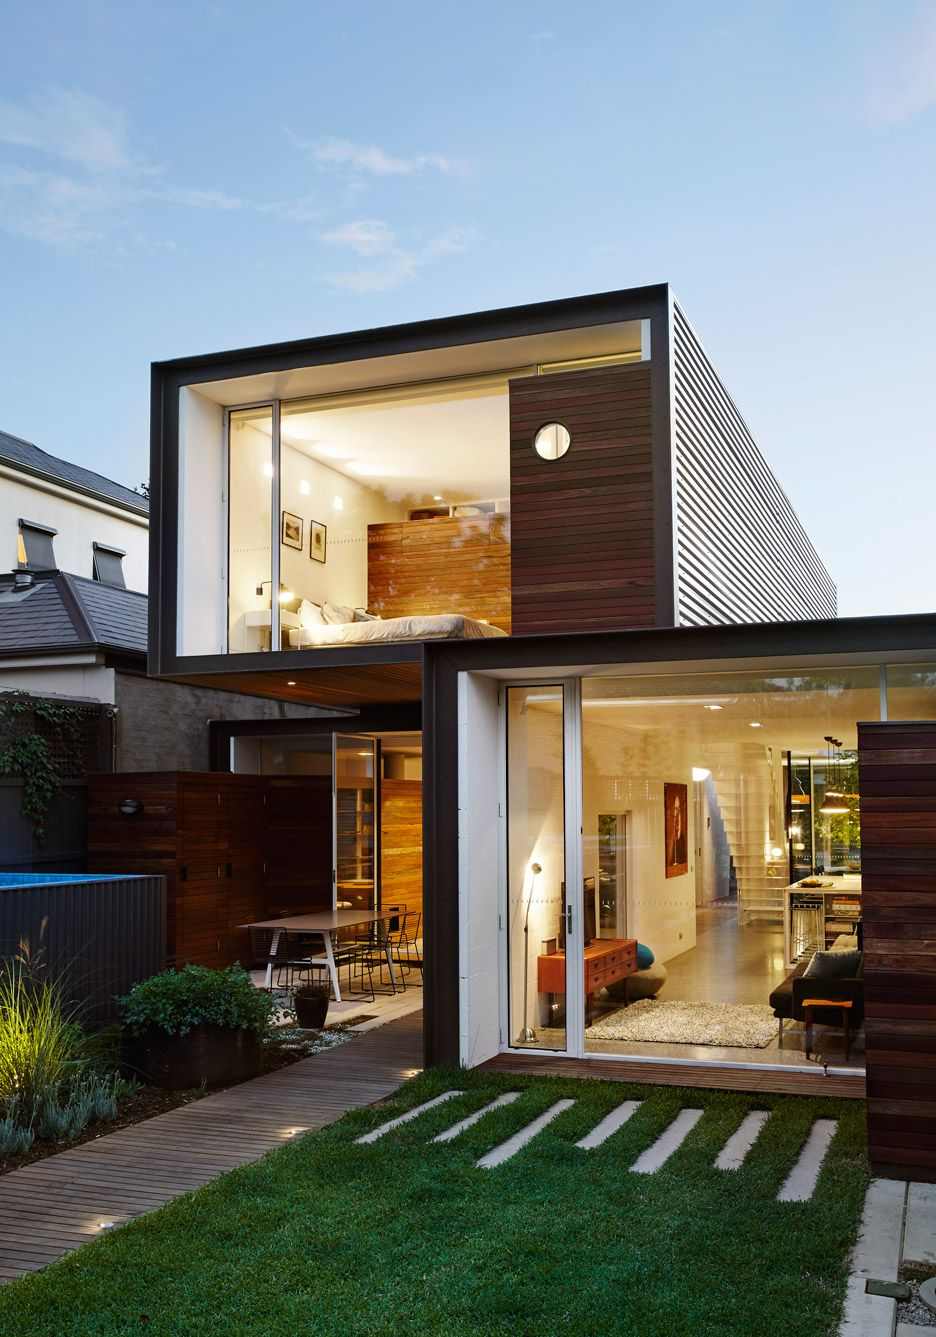 Melbourne house by austin maynard is deliberately compact